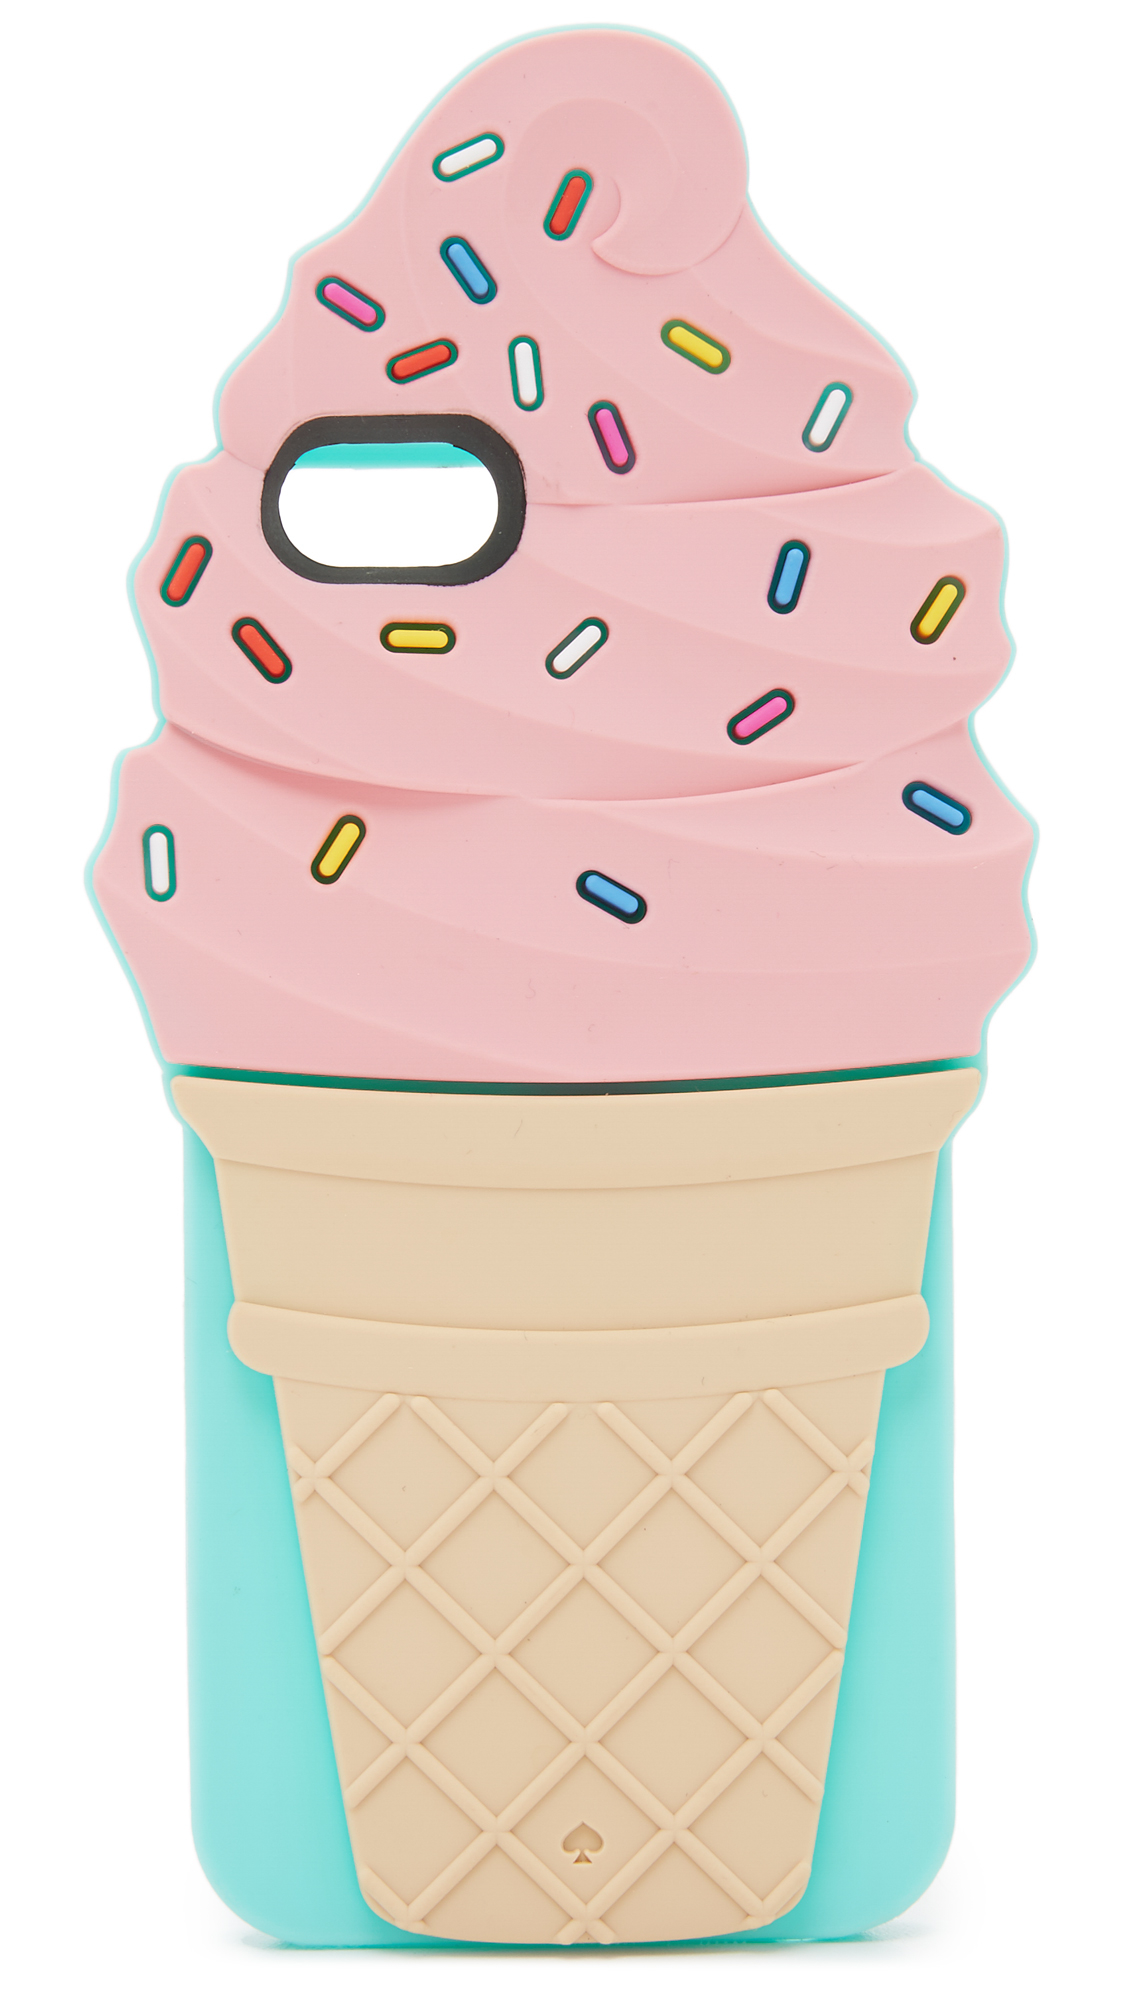 Kate spade new york Ice Cream Cone Iphone 6 / 6s Case in Pink.